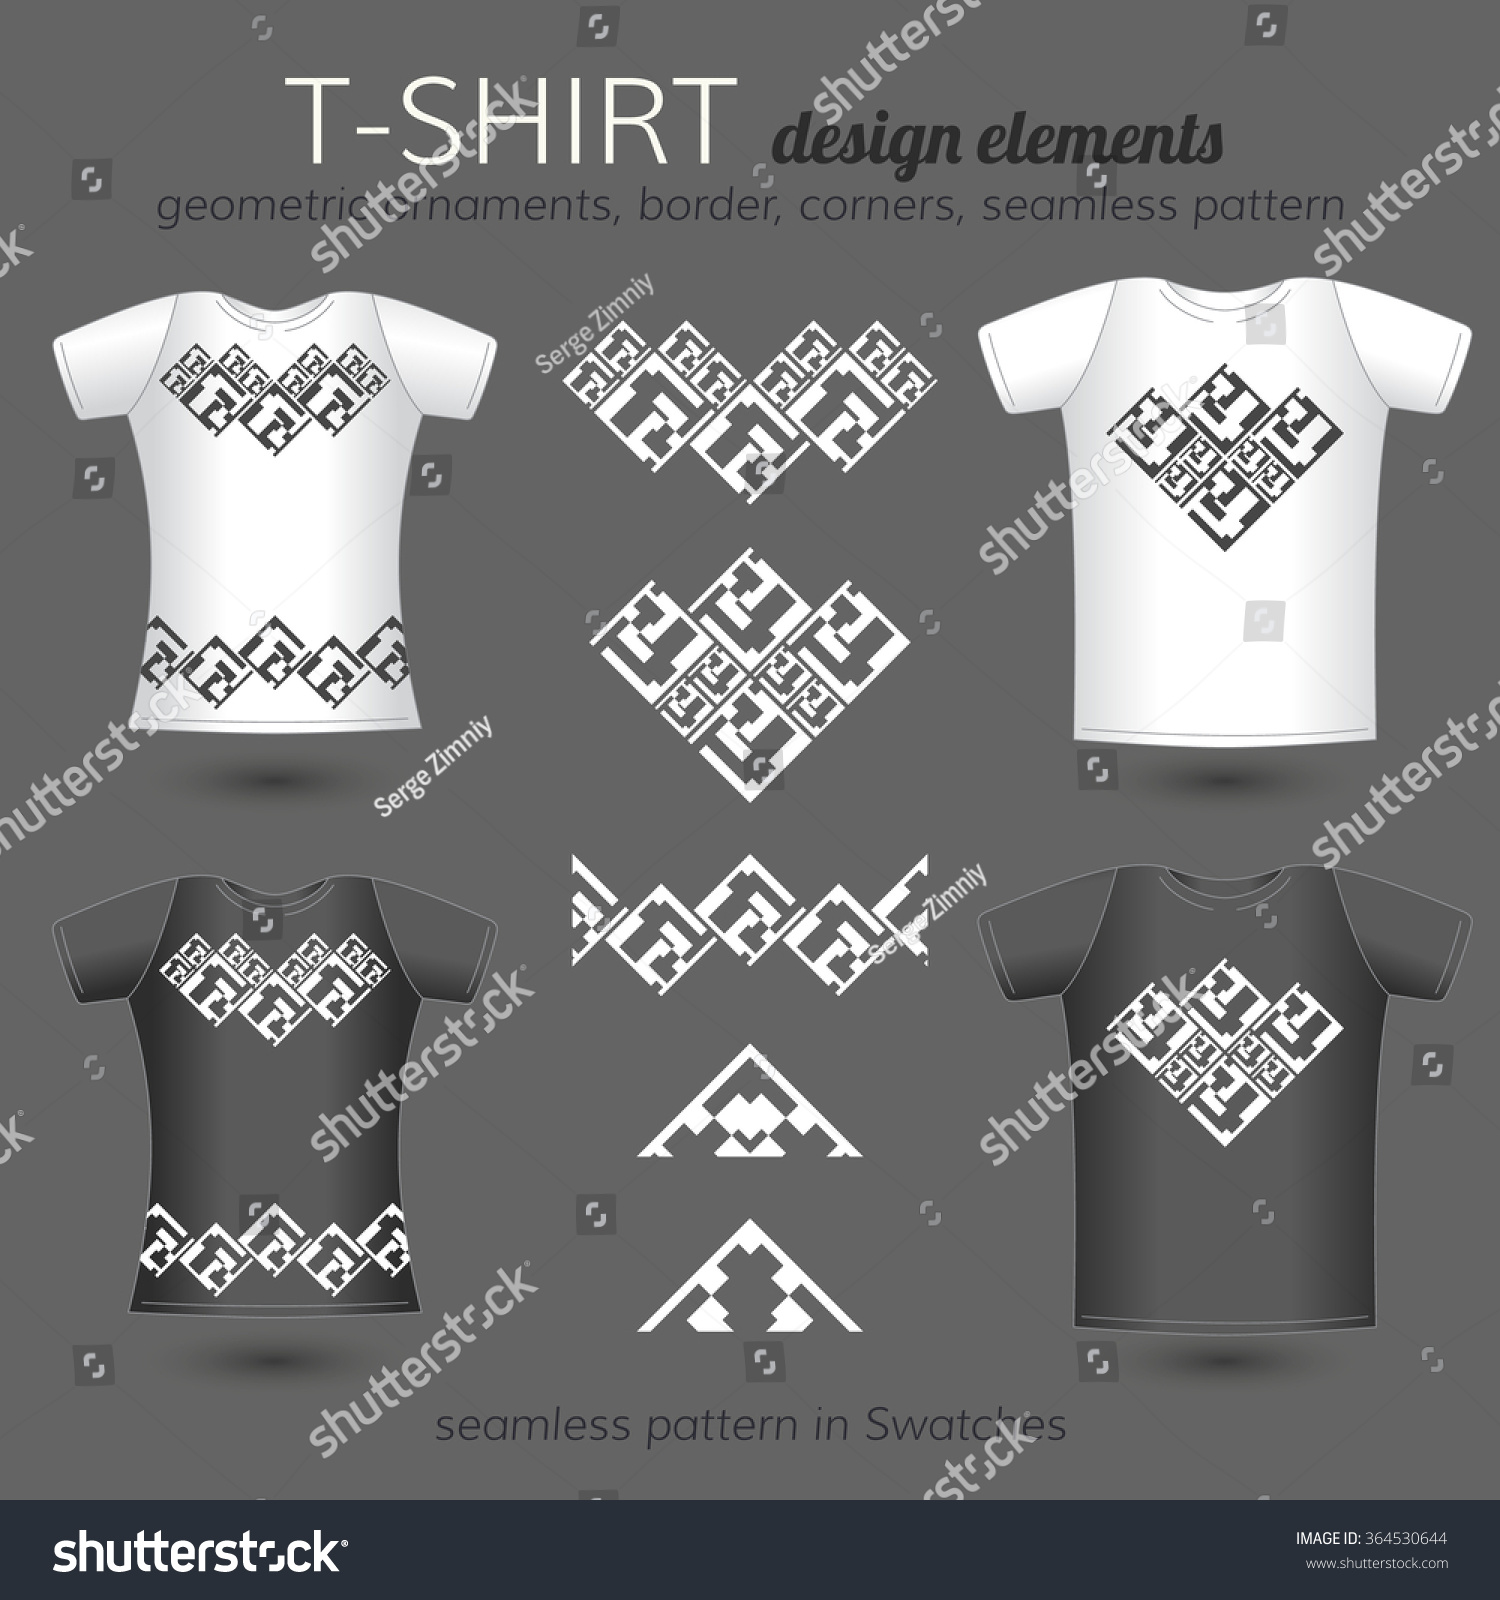 Shirt design elements - Male And Female T Shirt Design Elements Vector Template Of Black And White T